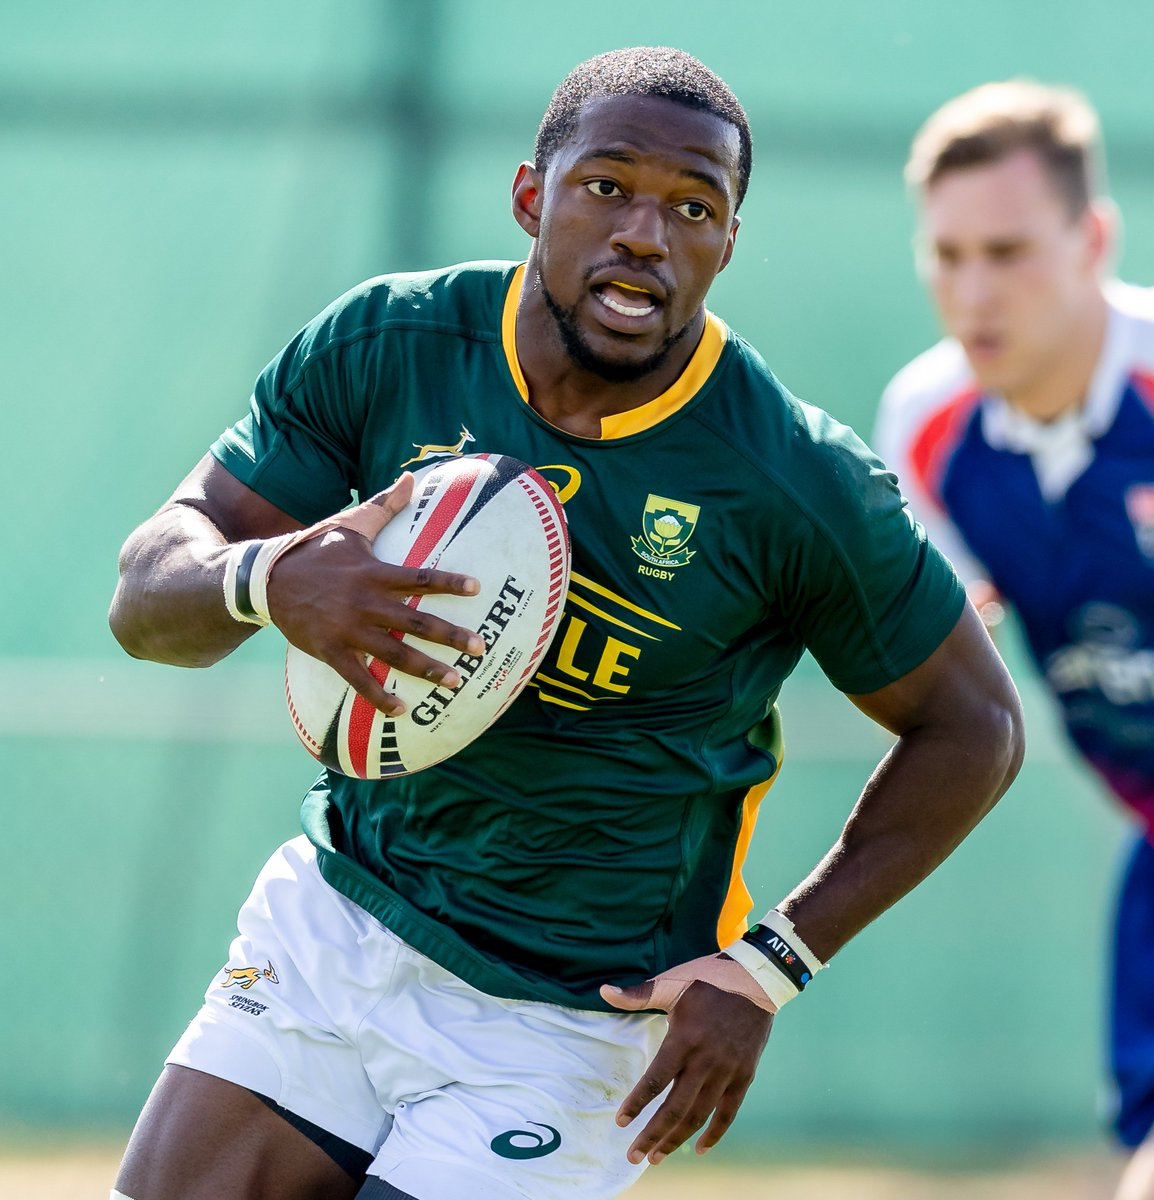 Ndhlovu into match say squad for HSBC Canada Sevens